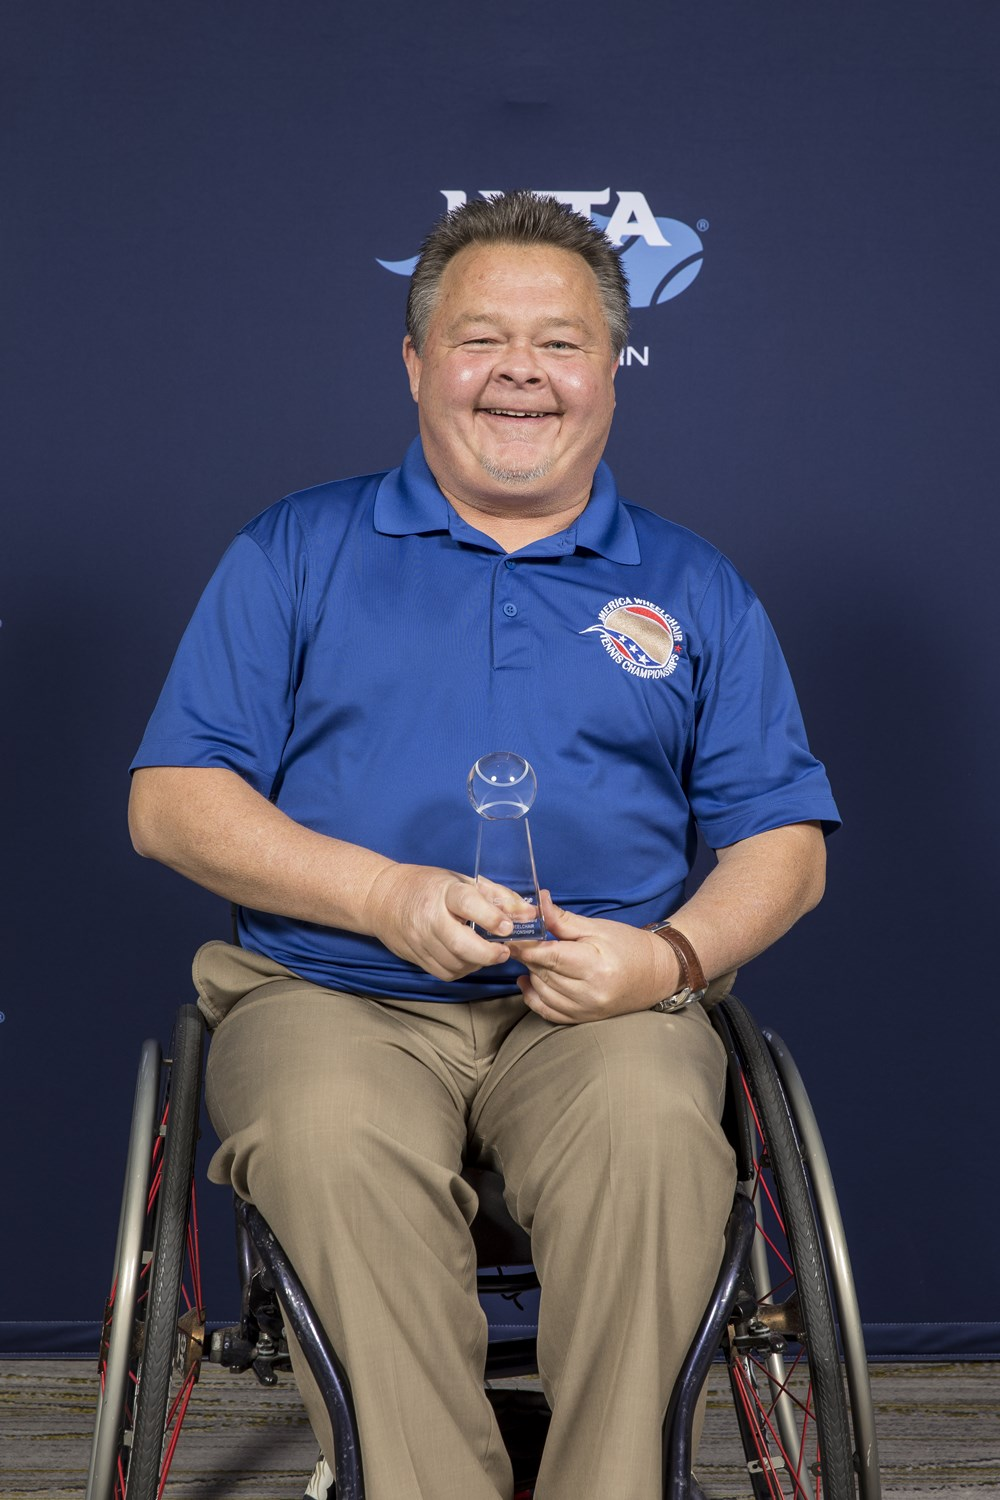 Wheelchair_Excellence_Award_-_American_Wheelchair_Champs